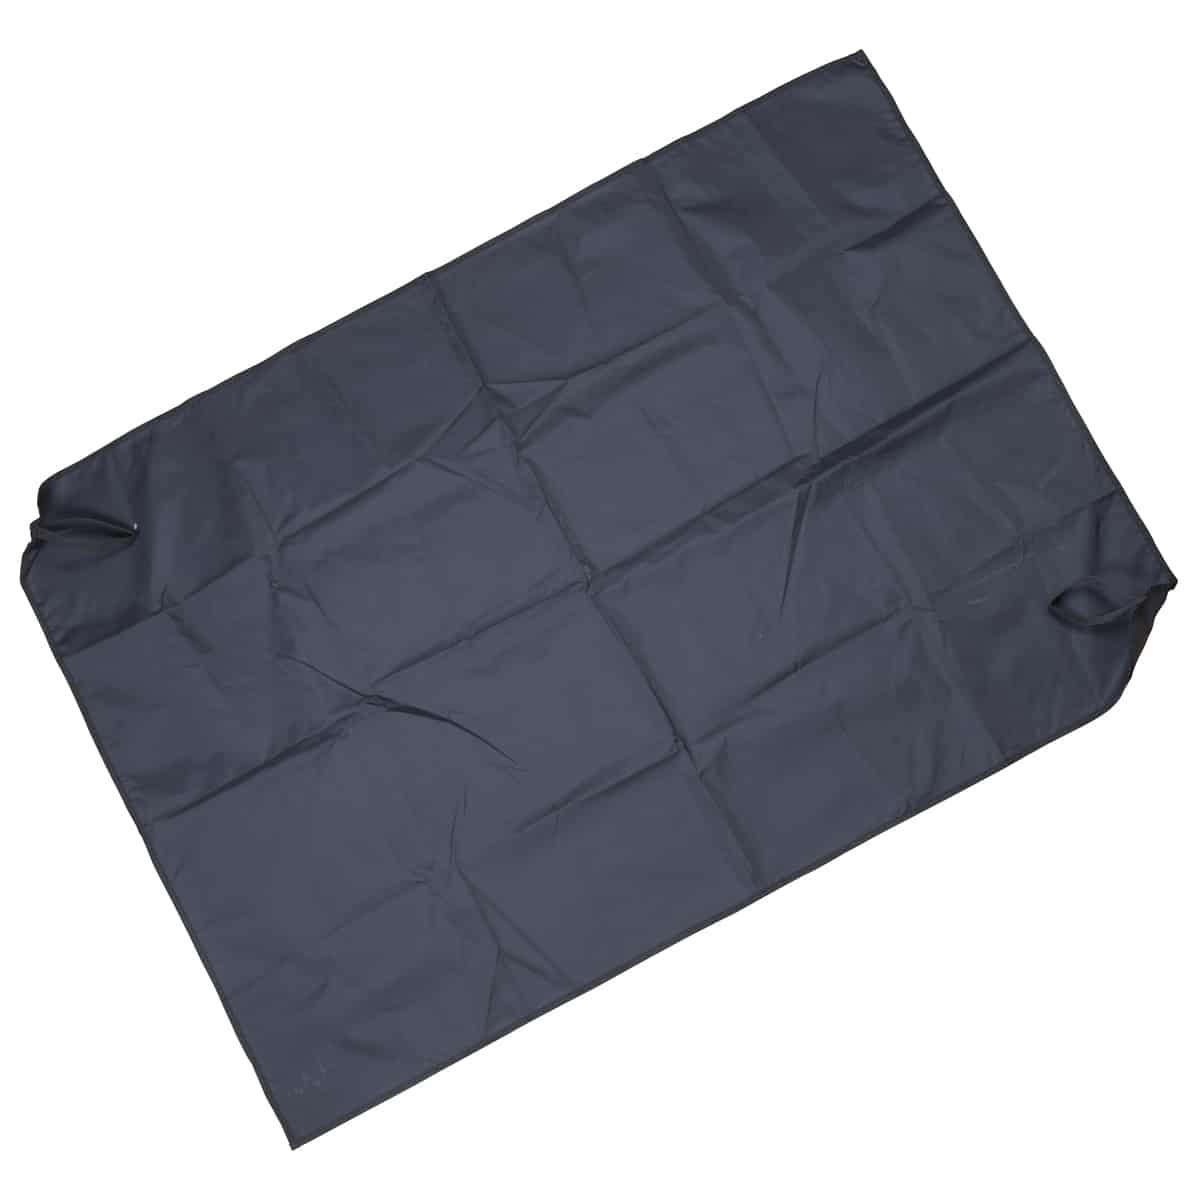 rope tarp offered with rope bag